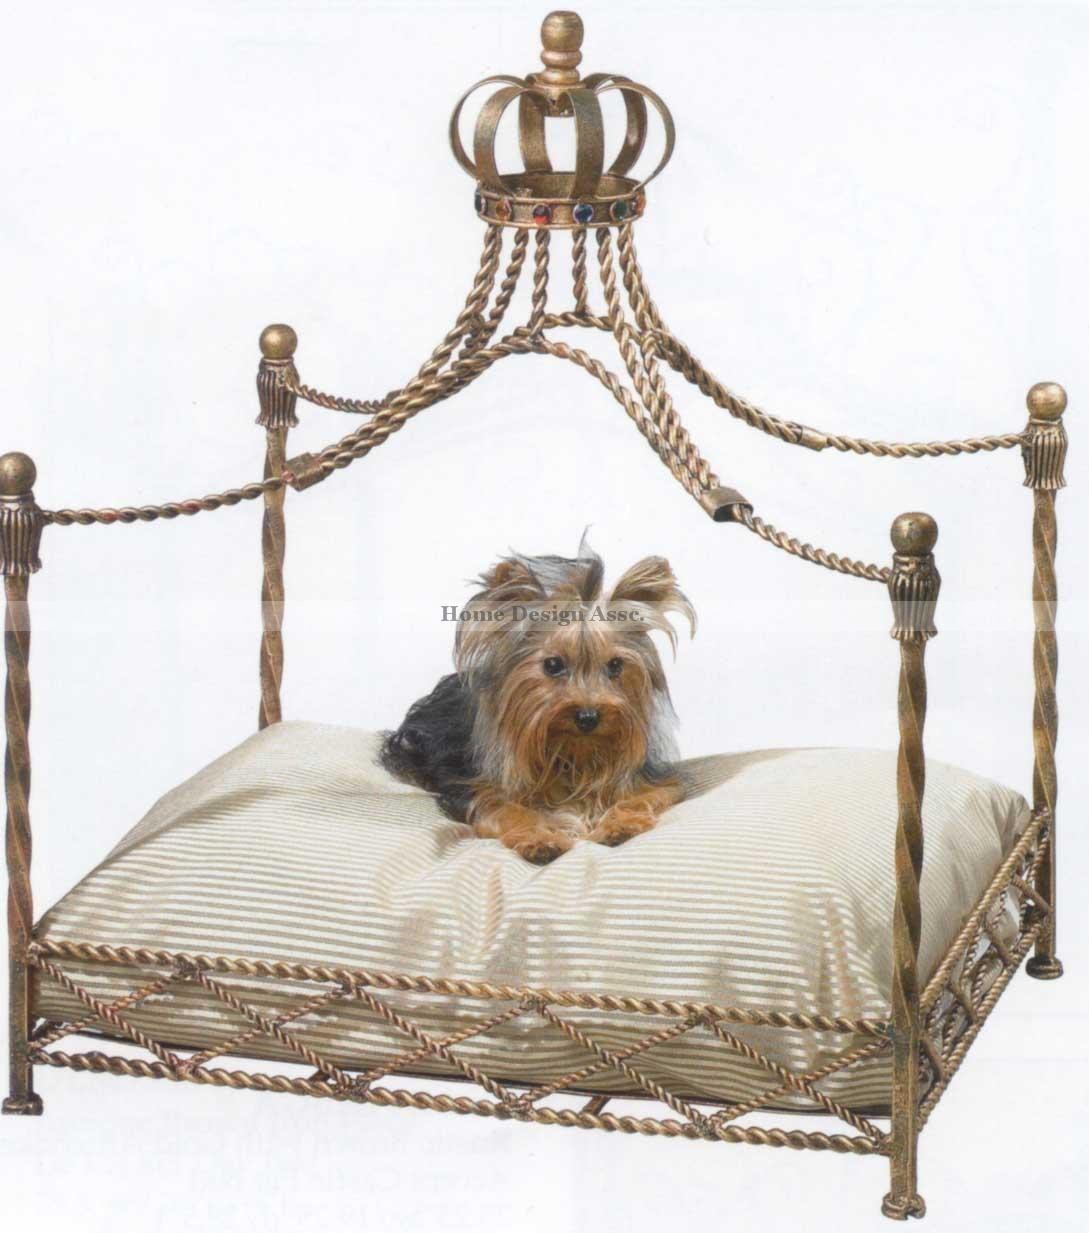 total fab luxury designer dog beds for small and large dogs With luxury dog beds for small dogs